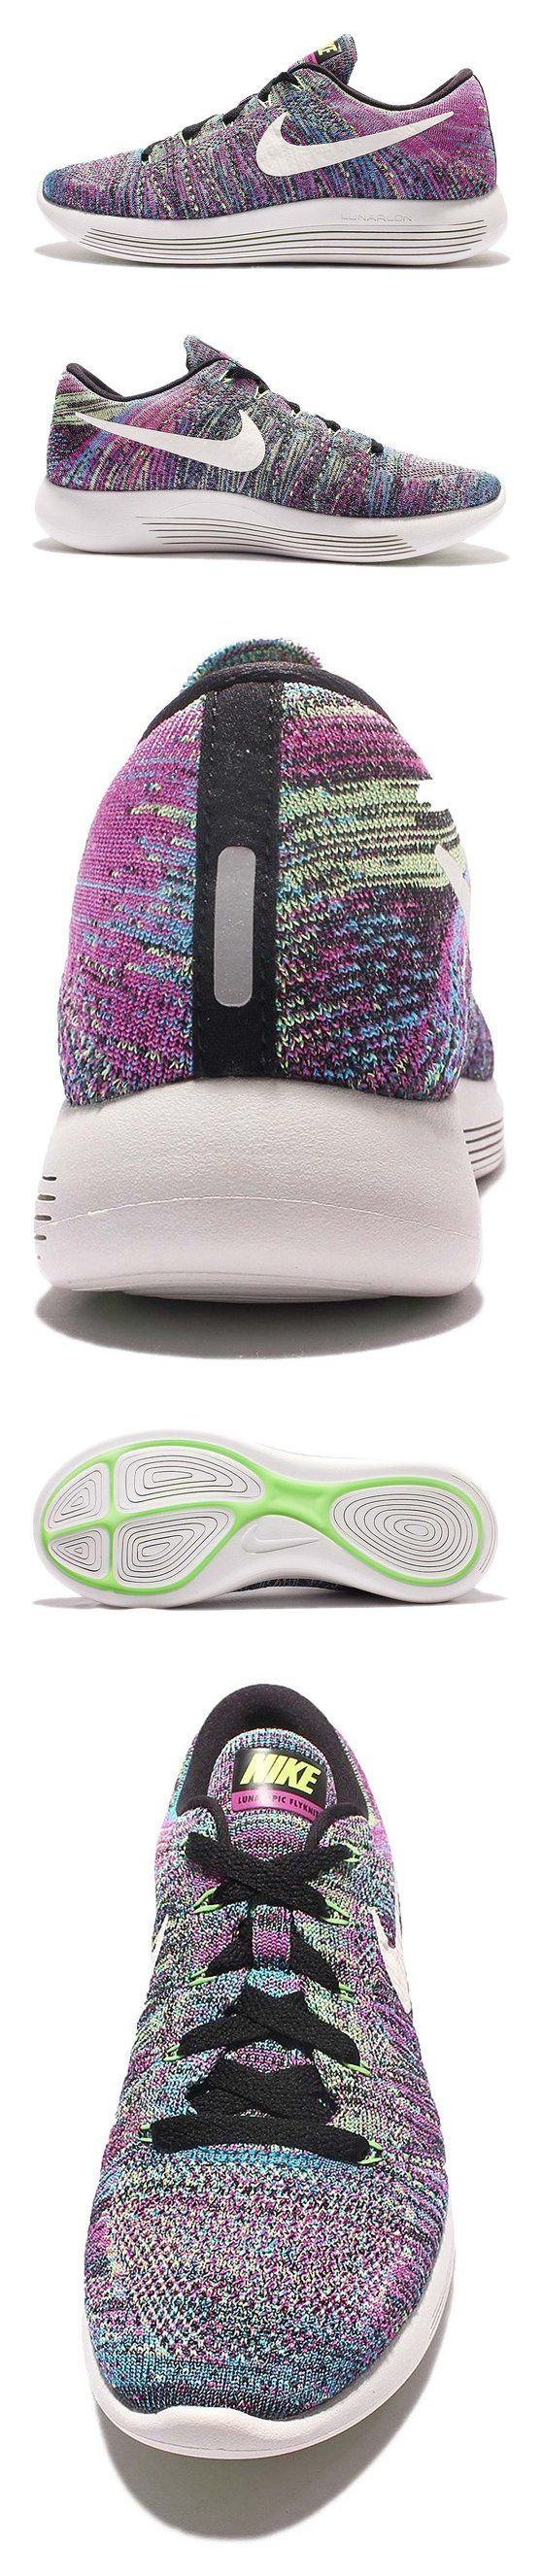 Nike Women's LunarEpic Low Flyknit Running Shoe Black/Summit White/Fire Pink/Blue Glow/Ghost Green 8 #shoes #nike